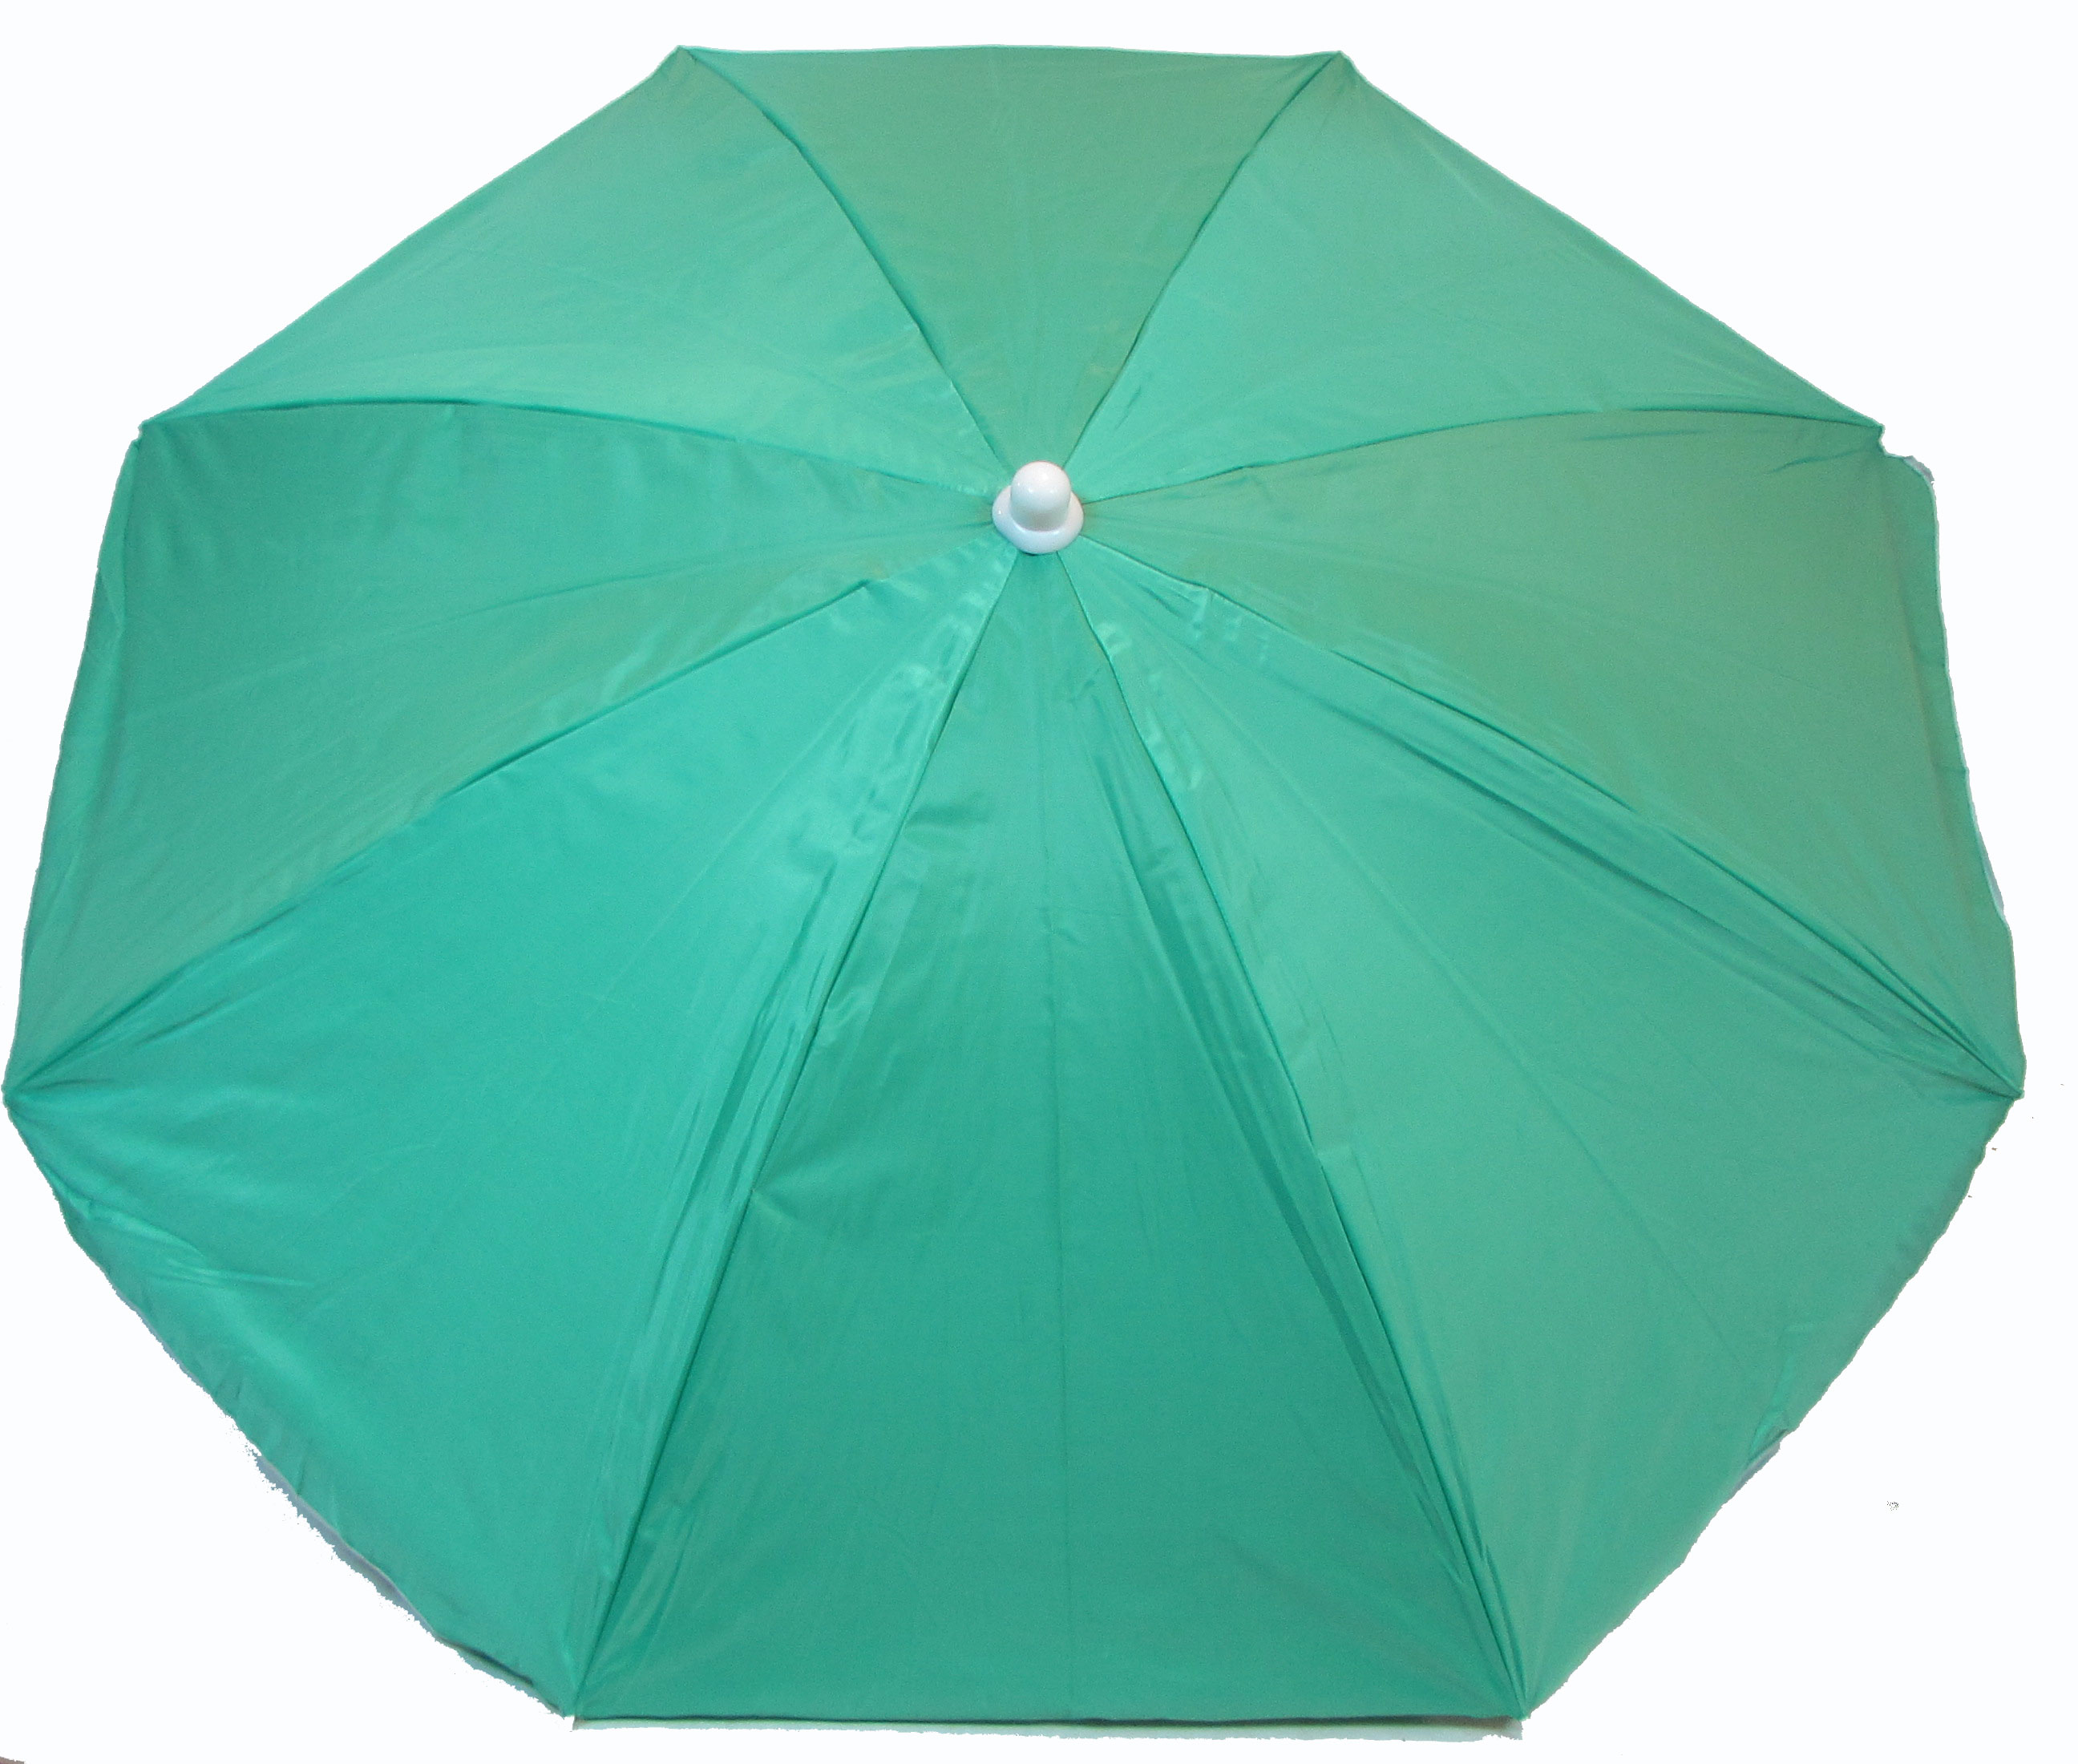 6 Foot Classic Oxford Beach Umbrella with Anchor by JGR COPA